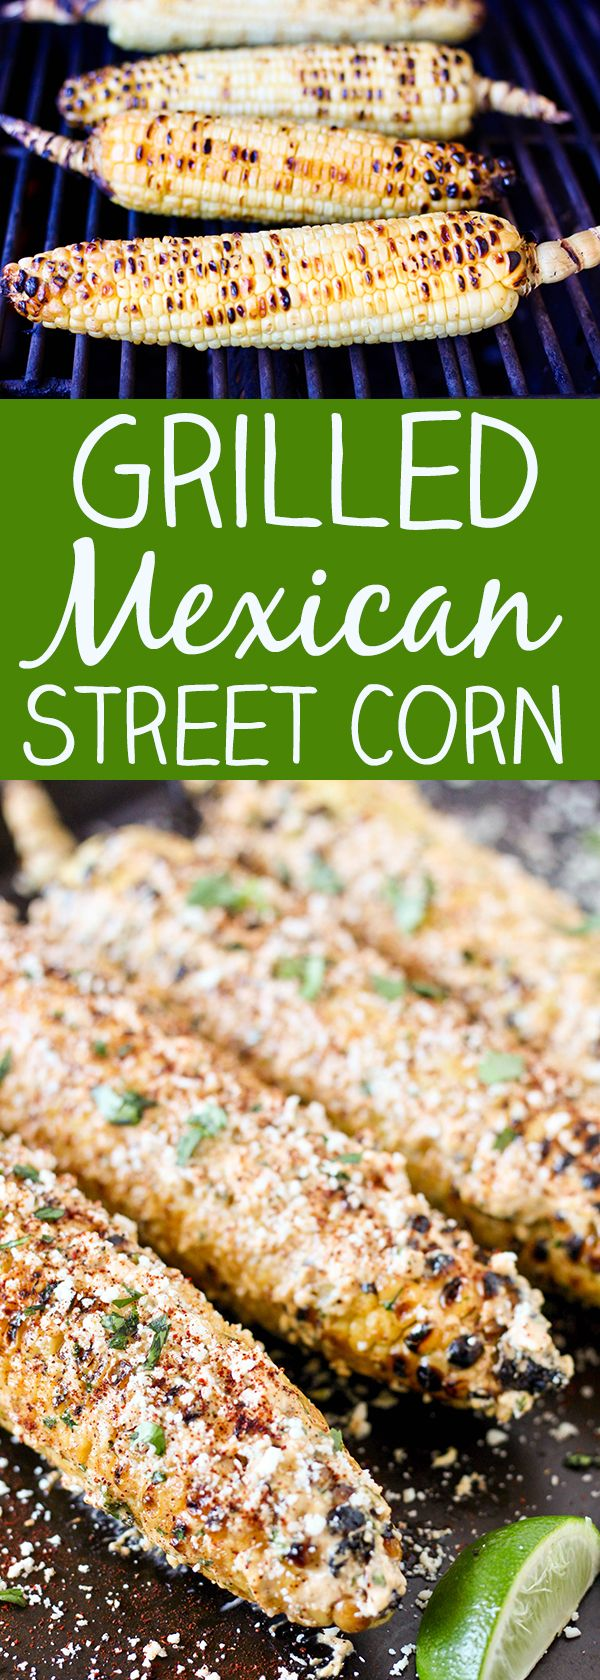 Grilled Mexican Street Corn #mexicanstreetcorn